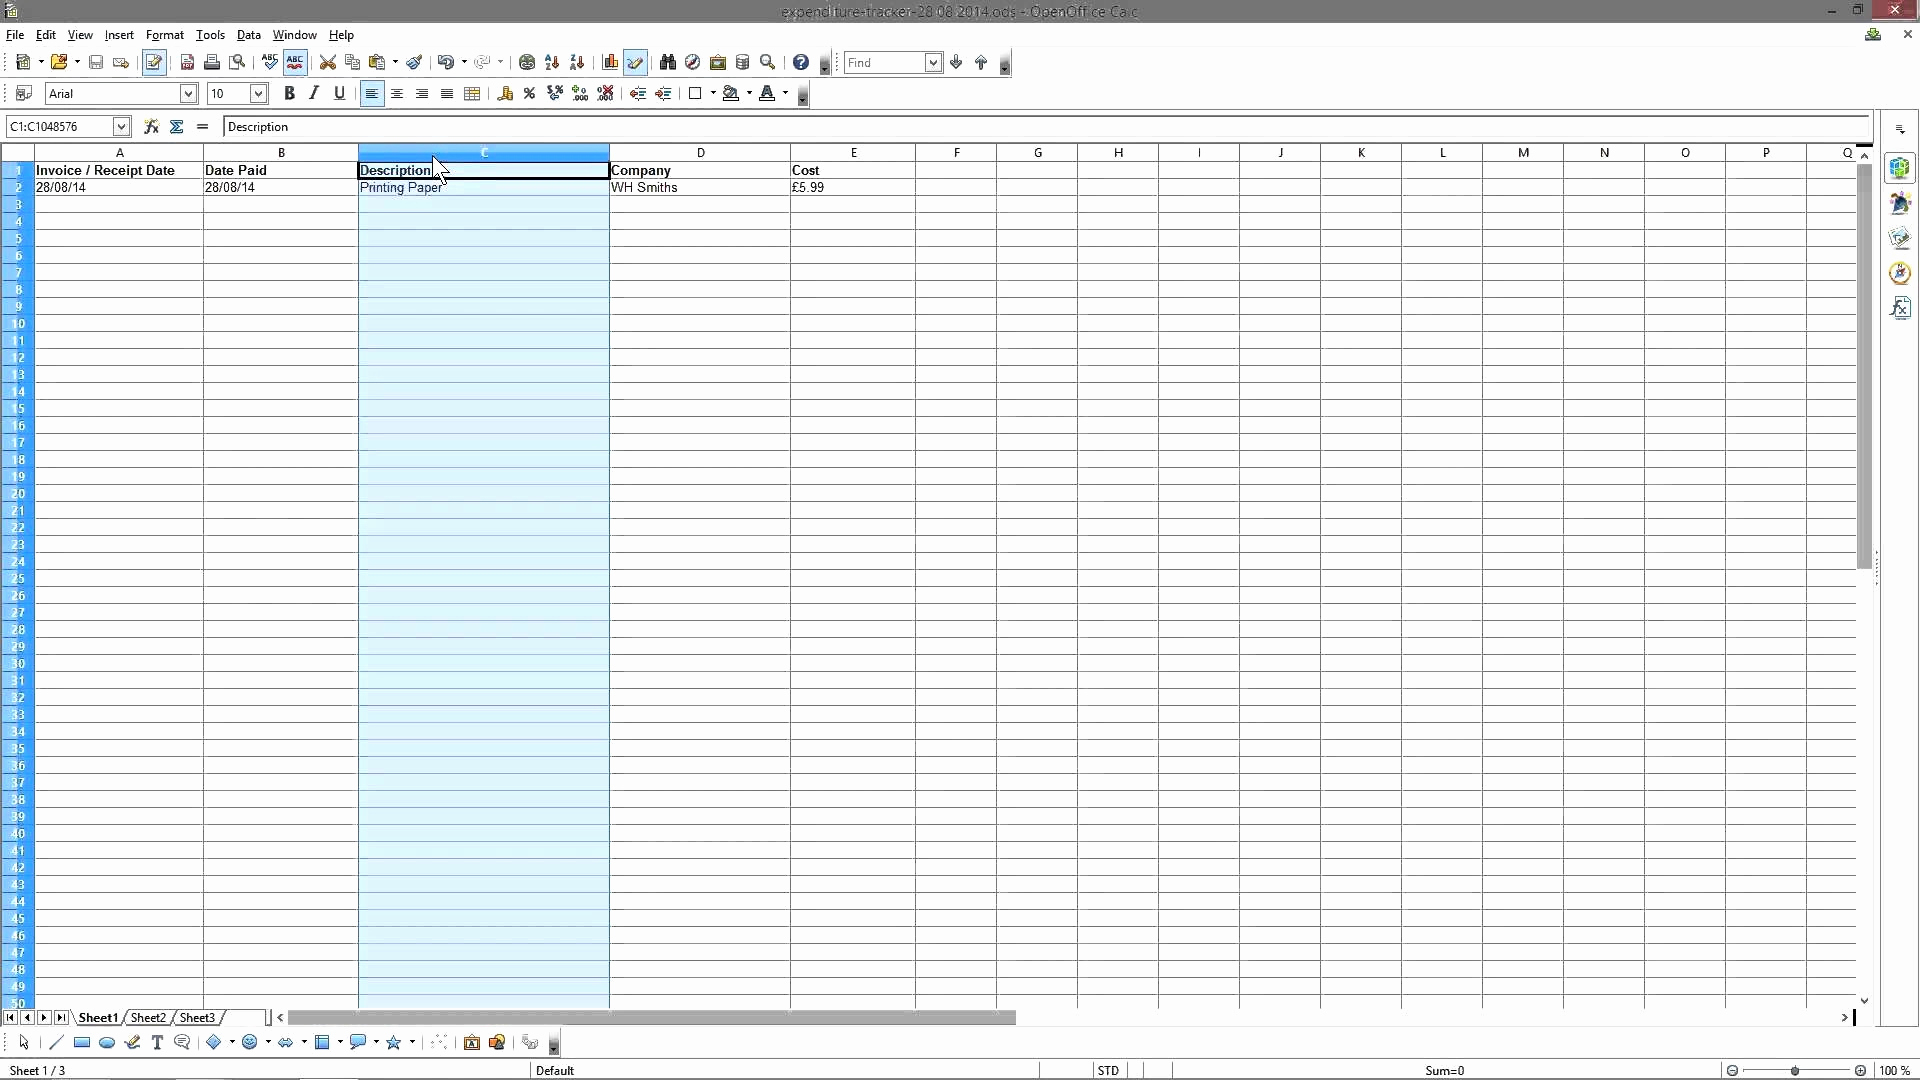 Inventory Sheet For Small Business Beautiful Small Business With Spreadsheet For Accounting In Small Business